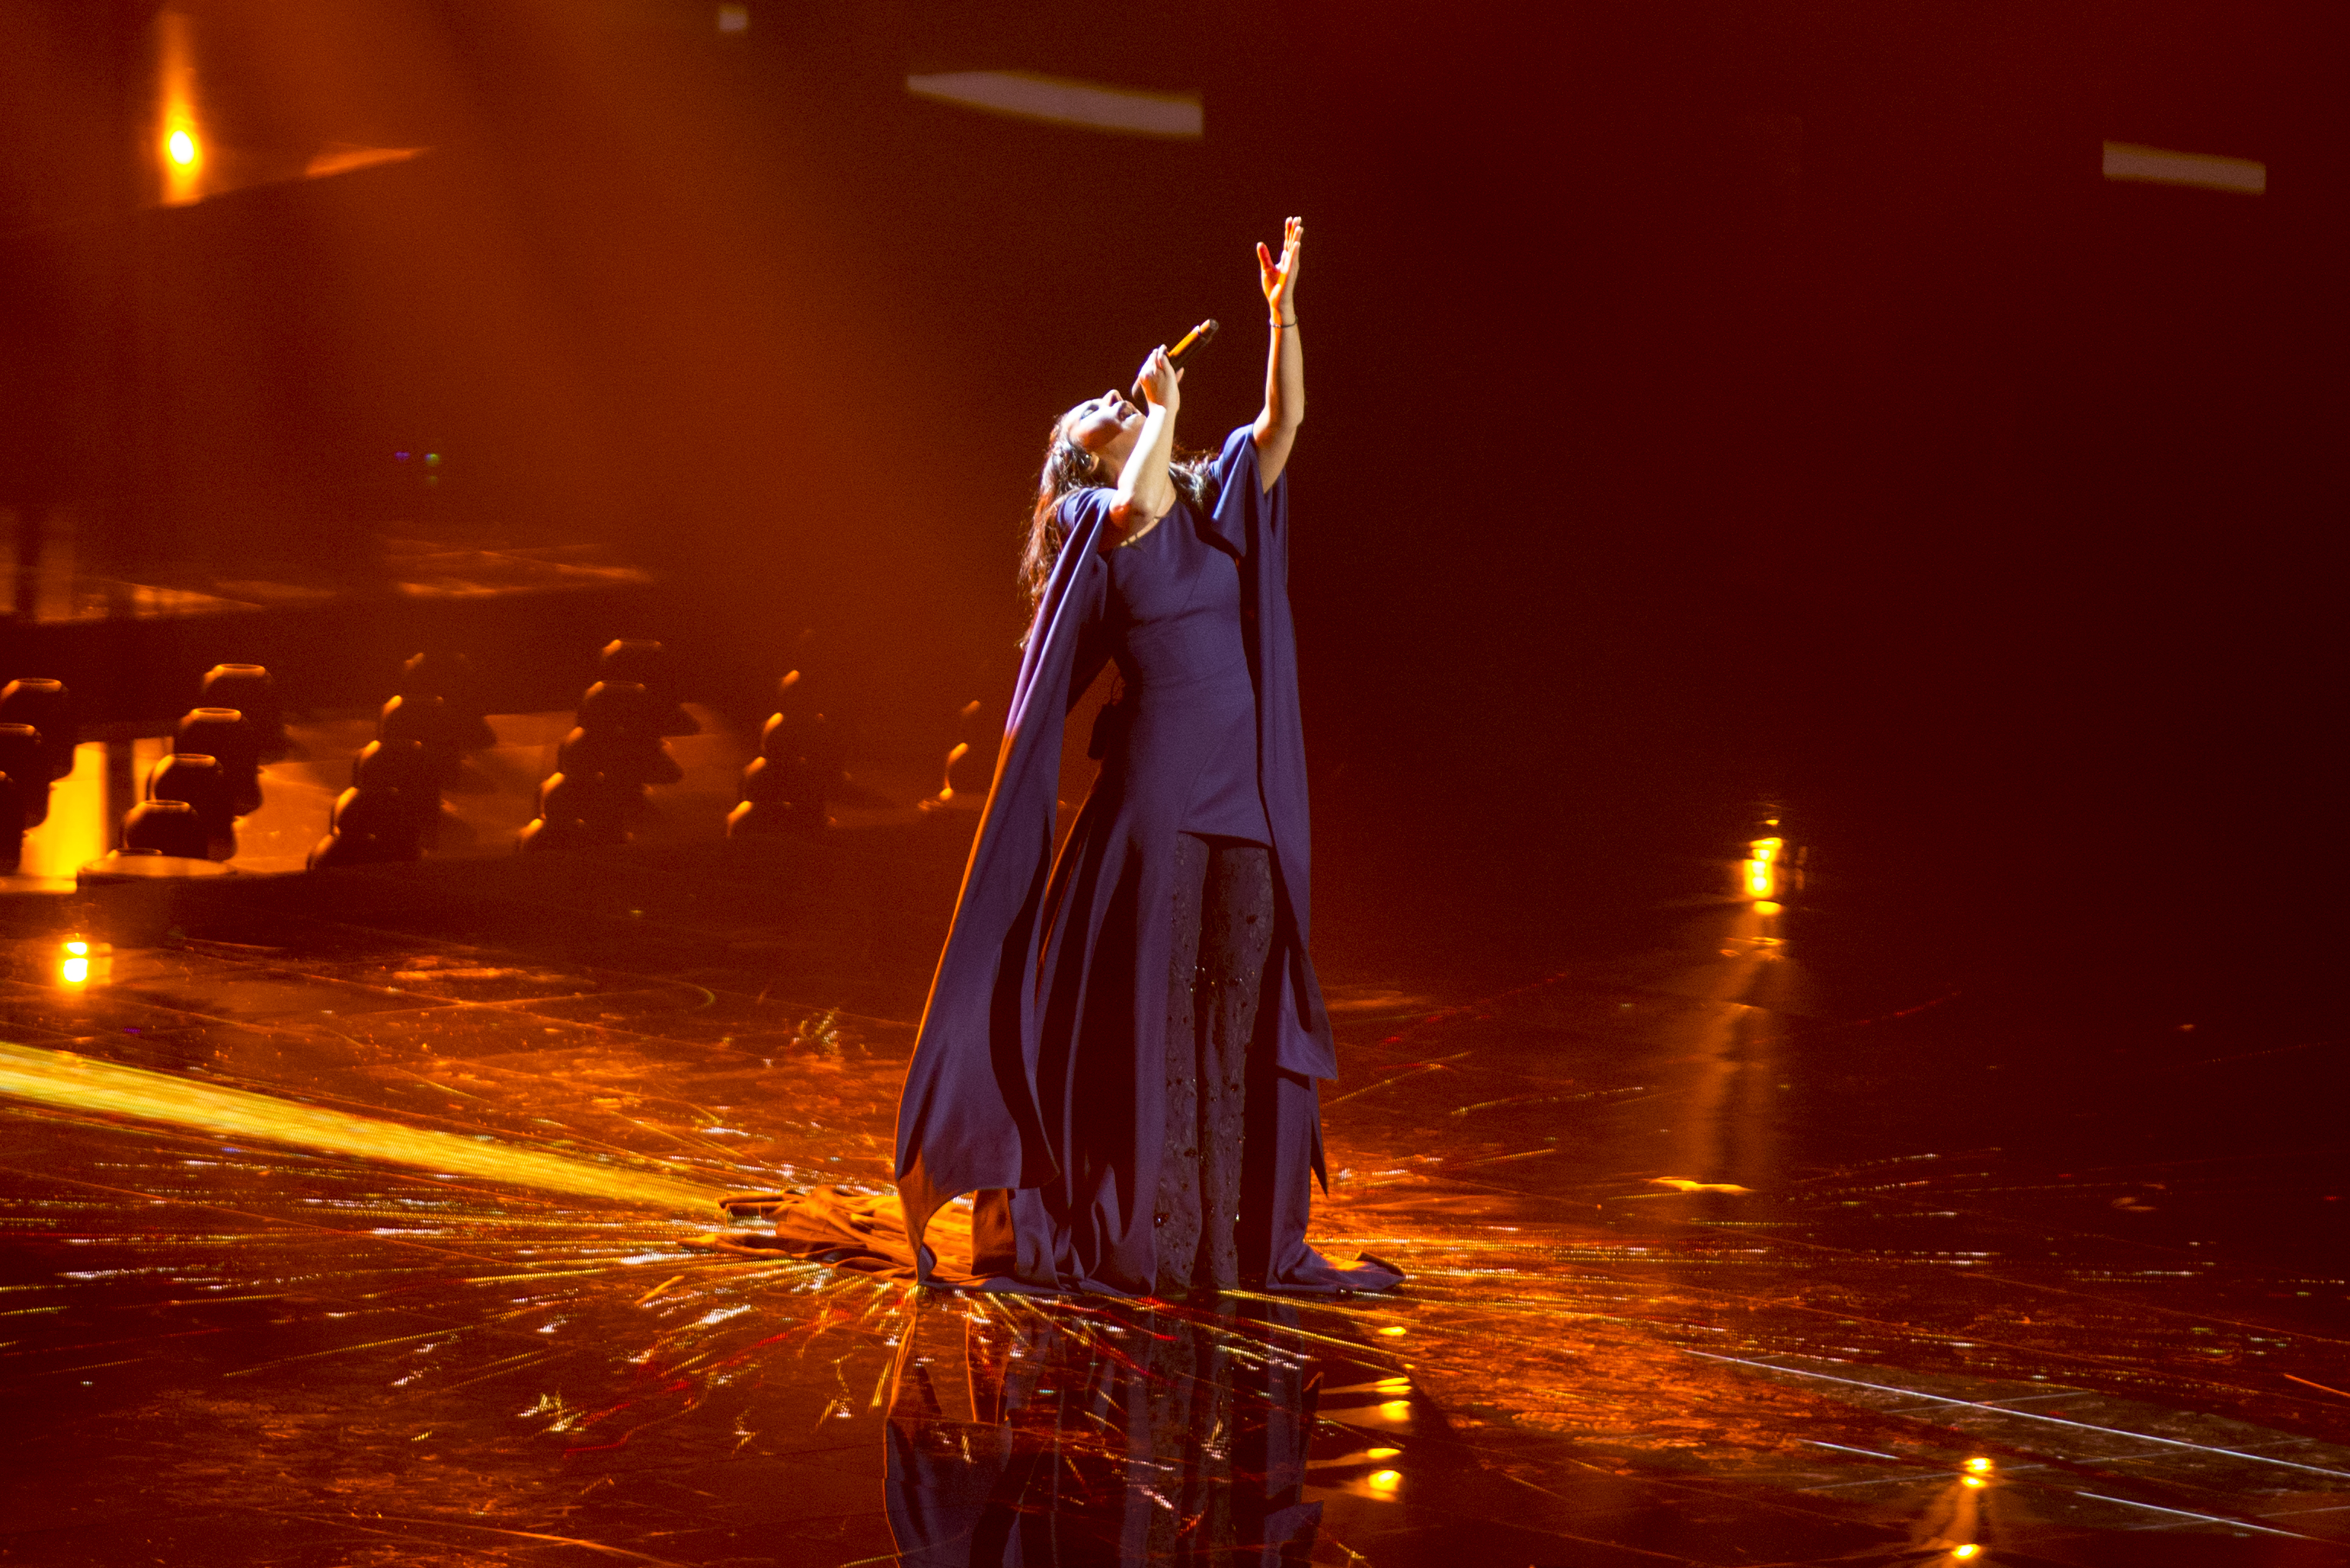 ukraine-photo-eurovision